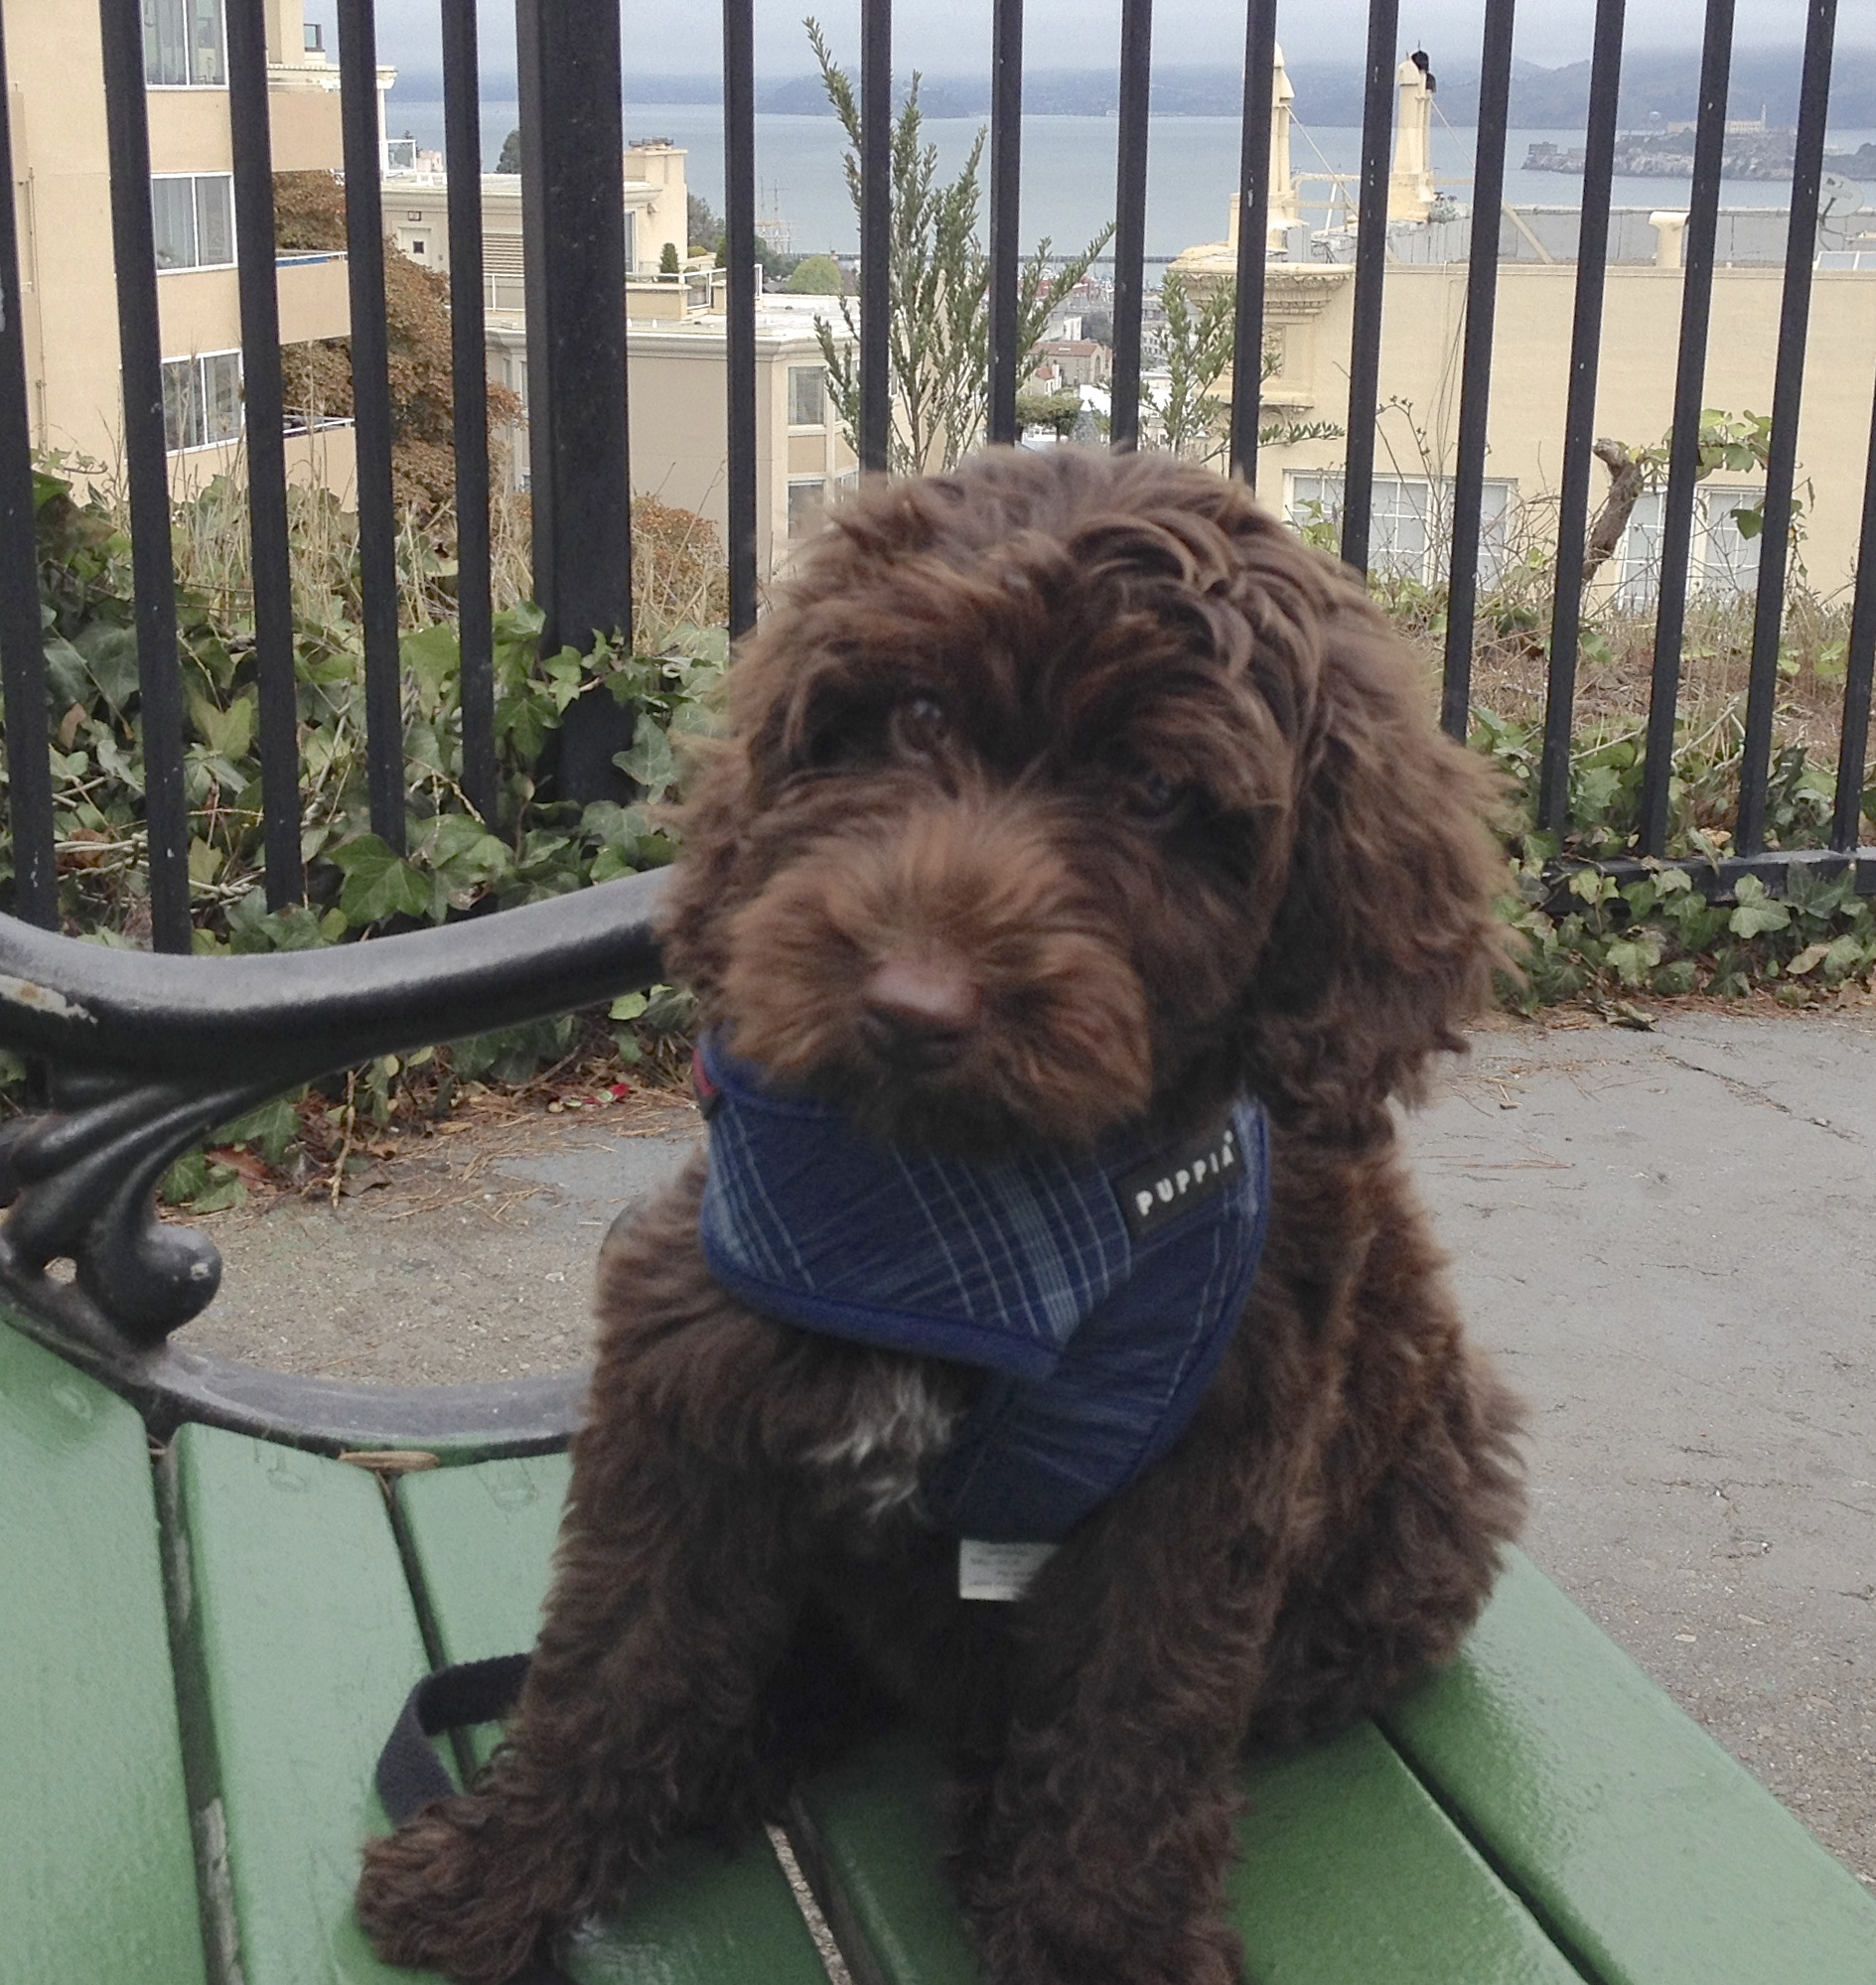 Brown Labradoodle Puppy On a Bench